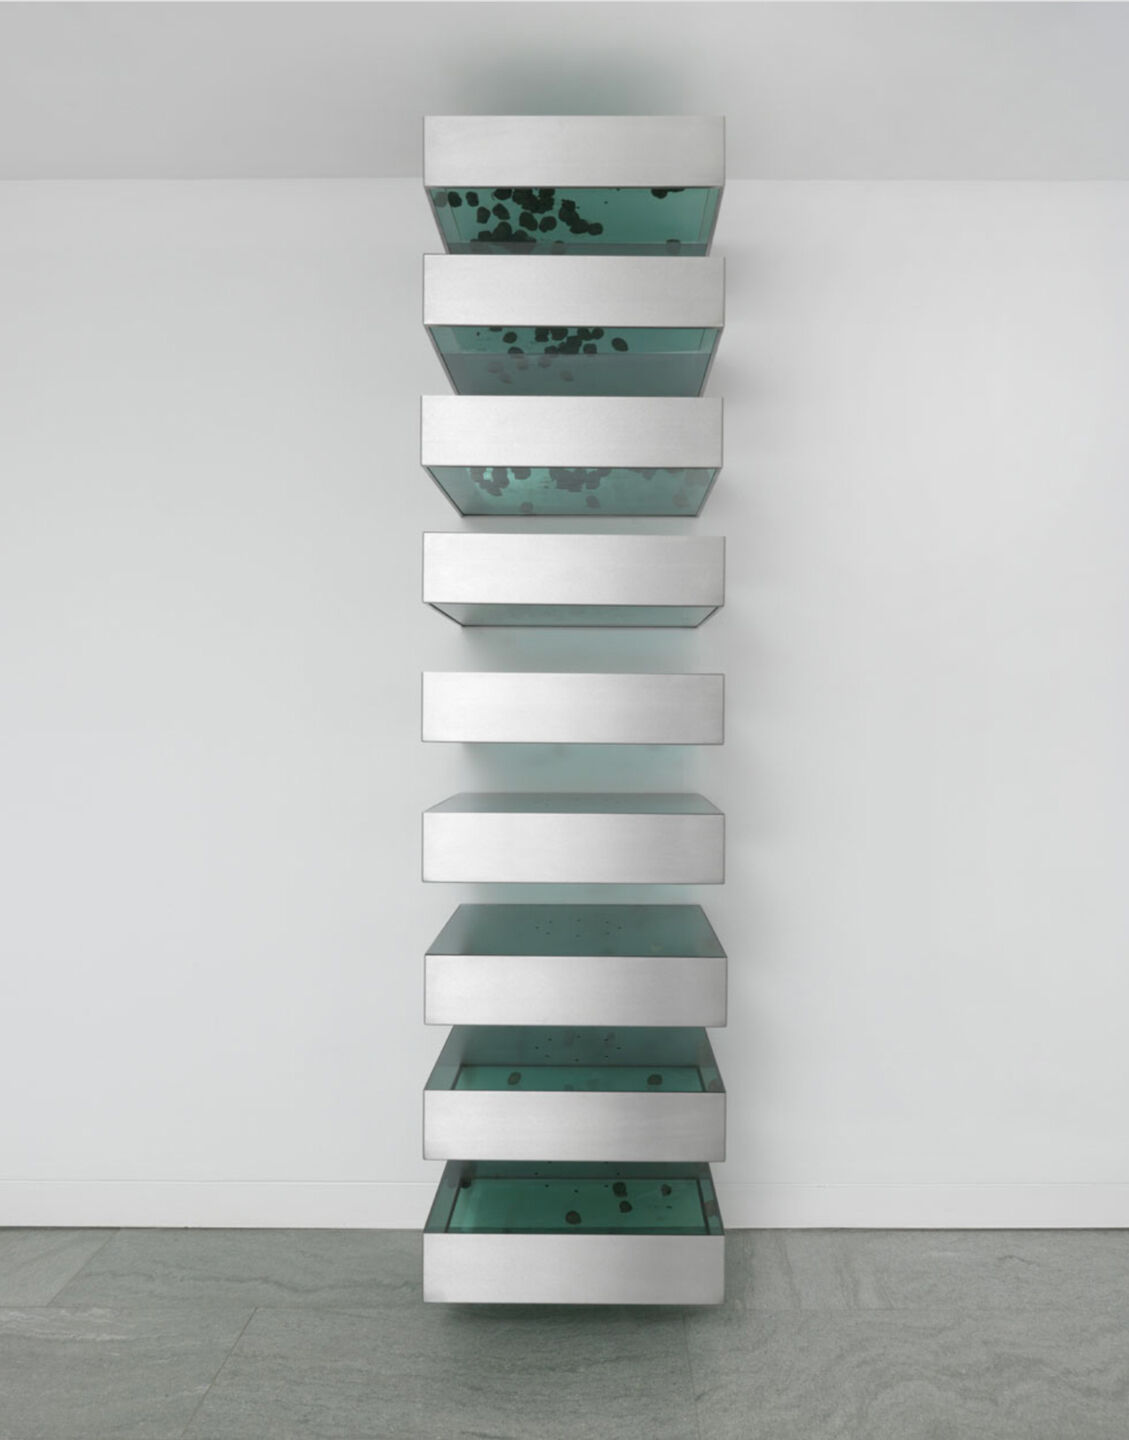 Martin Roth, Untitled (Donald Judd II), 2016. Courtesy of the artist.